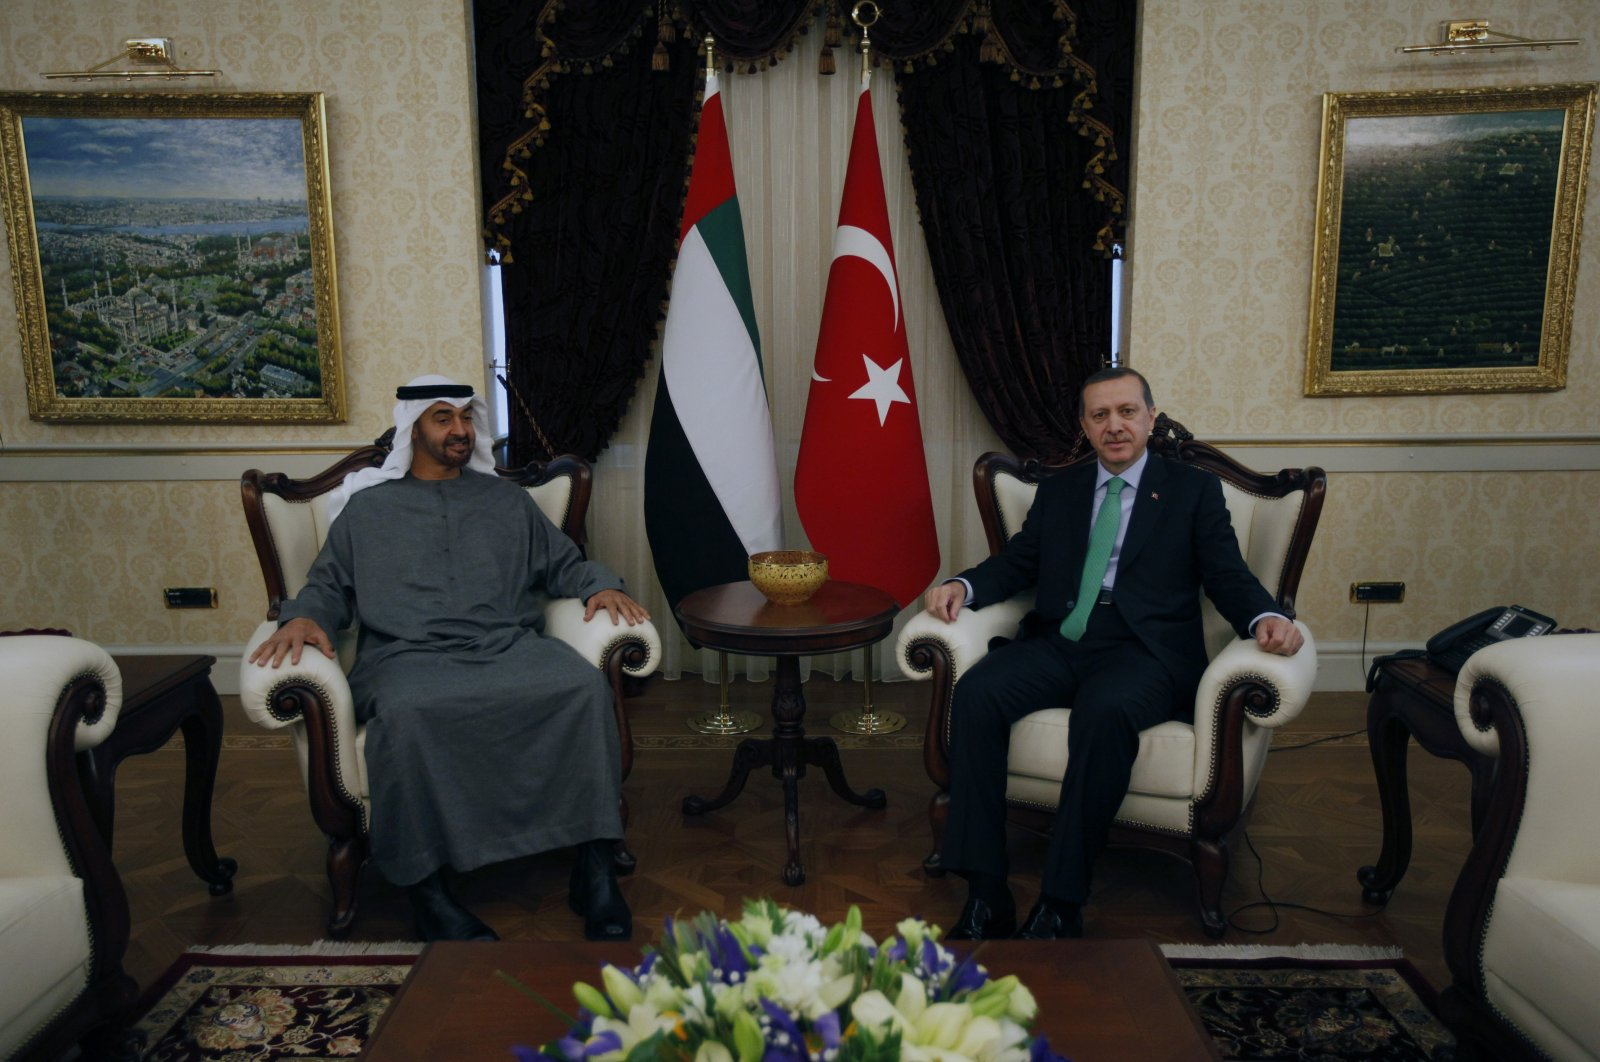 Abu Dhabi Crown Prince Mohammed bin Zayed Al Nahyan (L) and then-Prime Minister Recep Tayyip Erdoğan pose for cameras before their meeting in Ankara, Turkey, Feb. 28, 2012. (AP Photo)